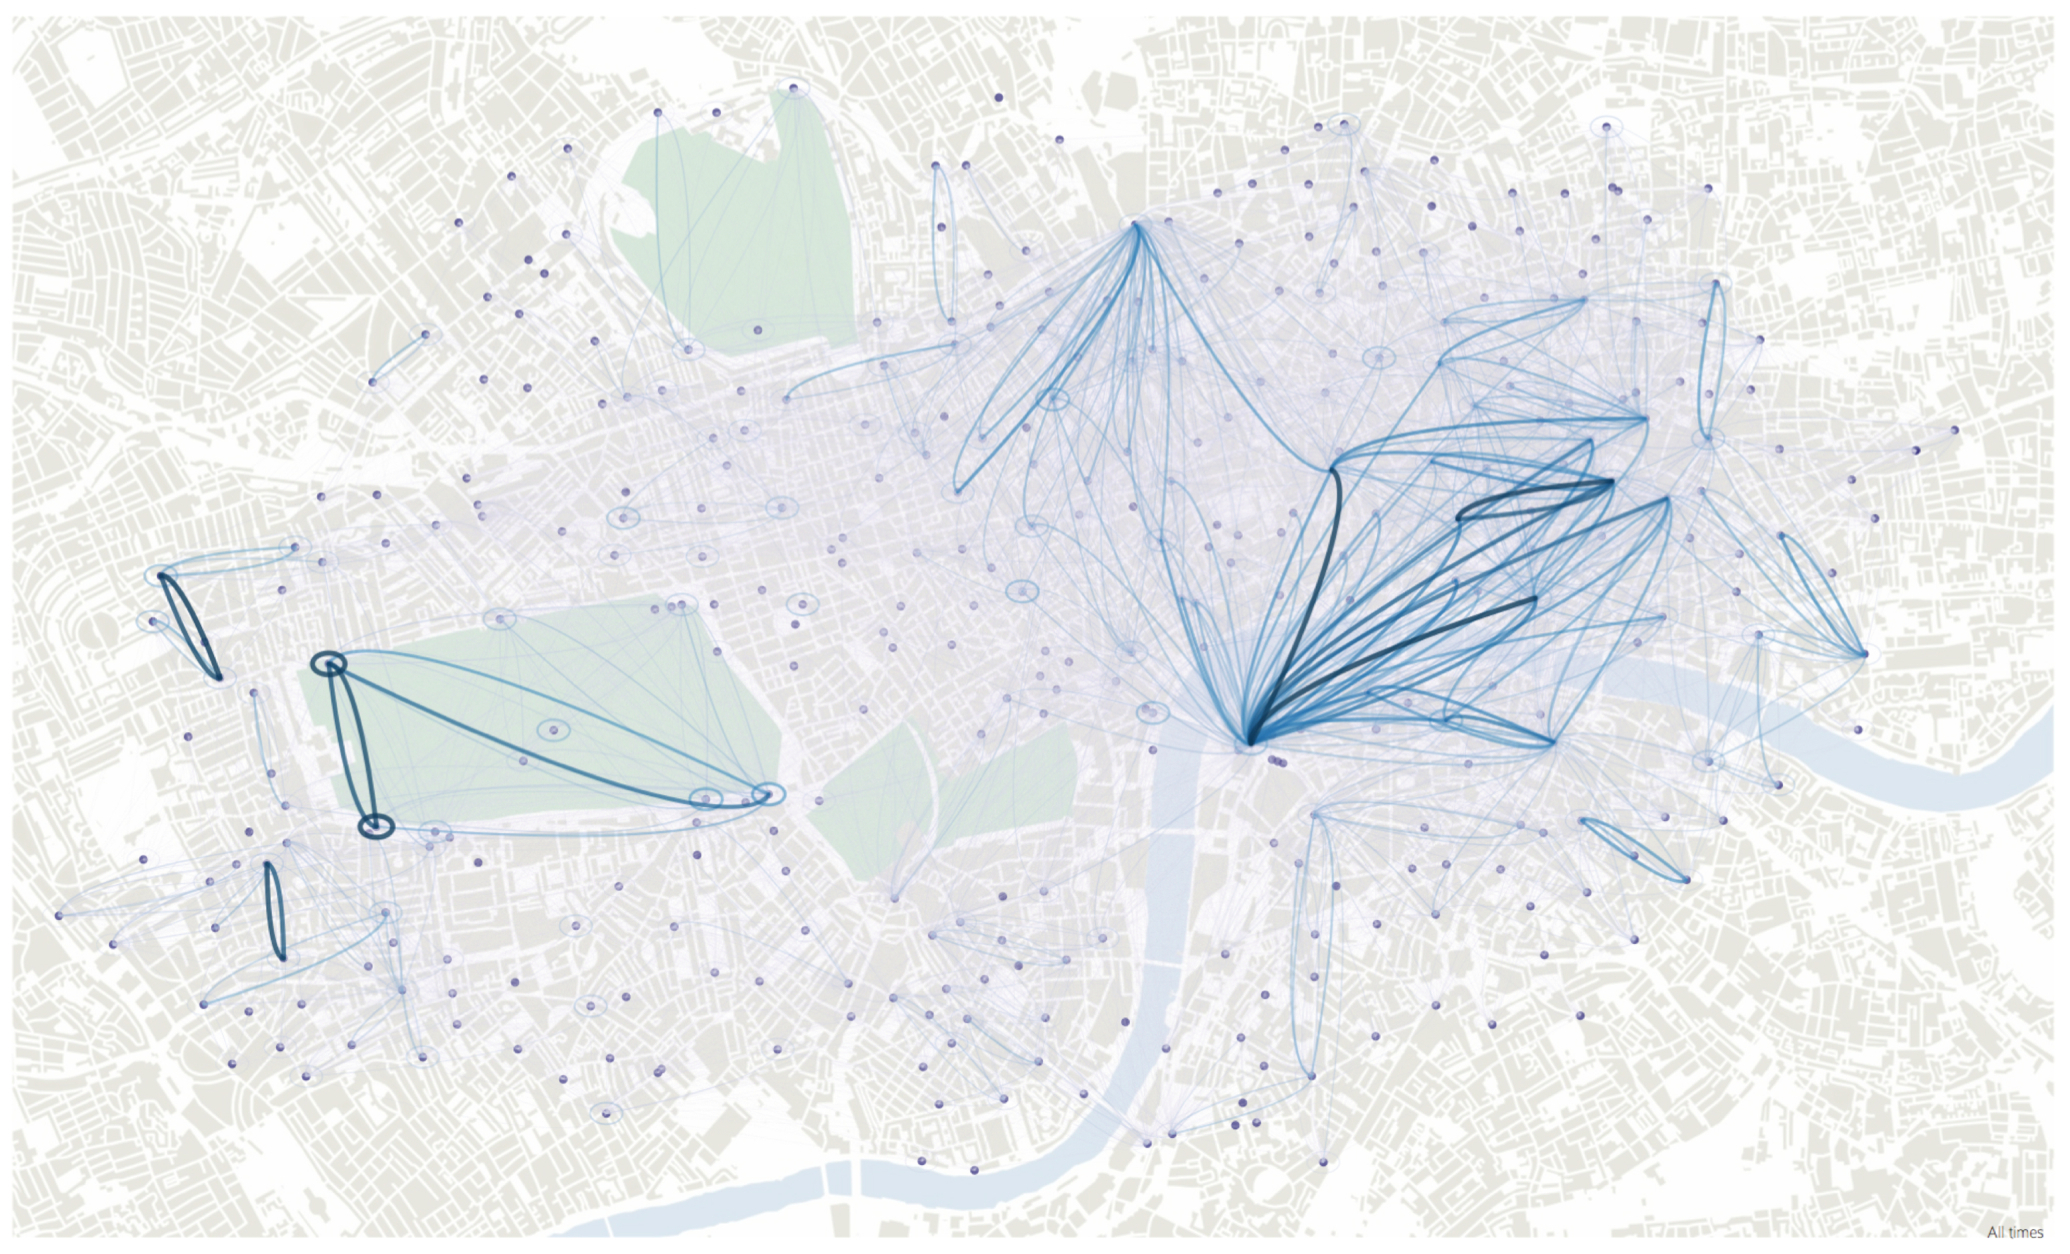 Fig 1a. Bezier curve flow map showing journeys made between docking stations of the London Cycle Hire Scheme between 21st September – 20th October 2011. The overall structure of scheme usage is emphasised. Figure previously appeared in Wood et al. (2011).